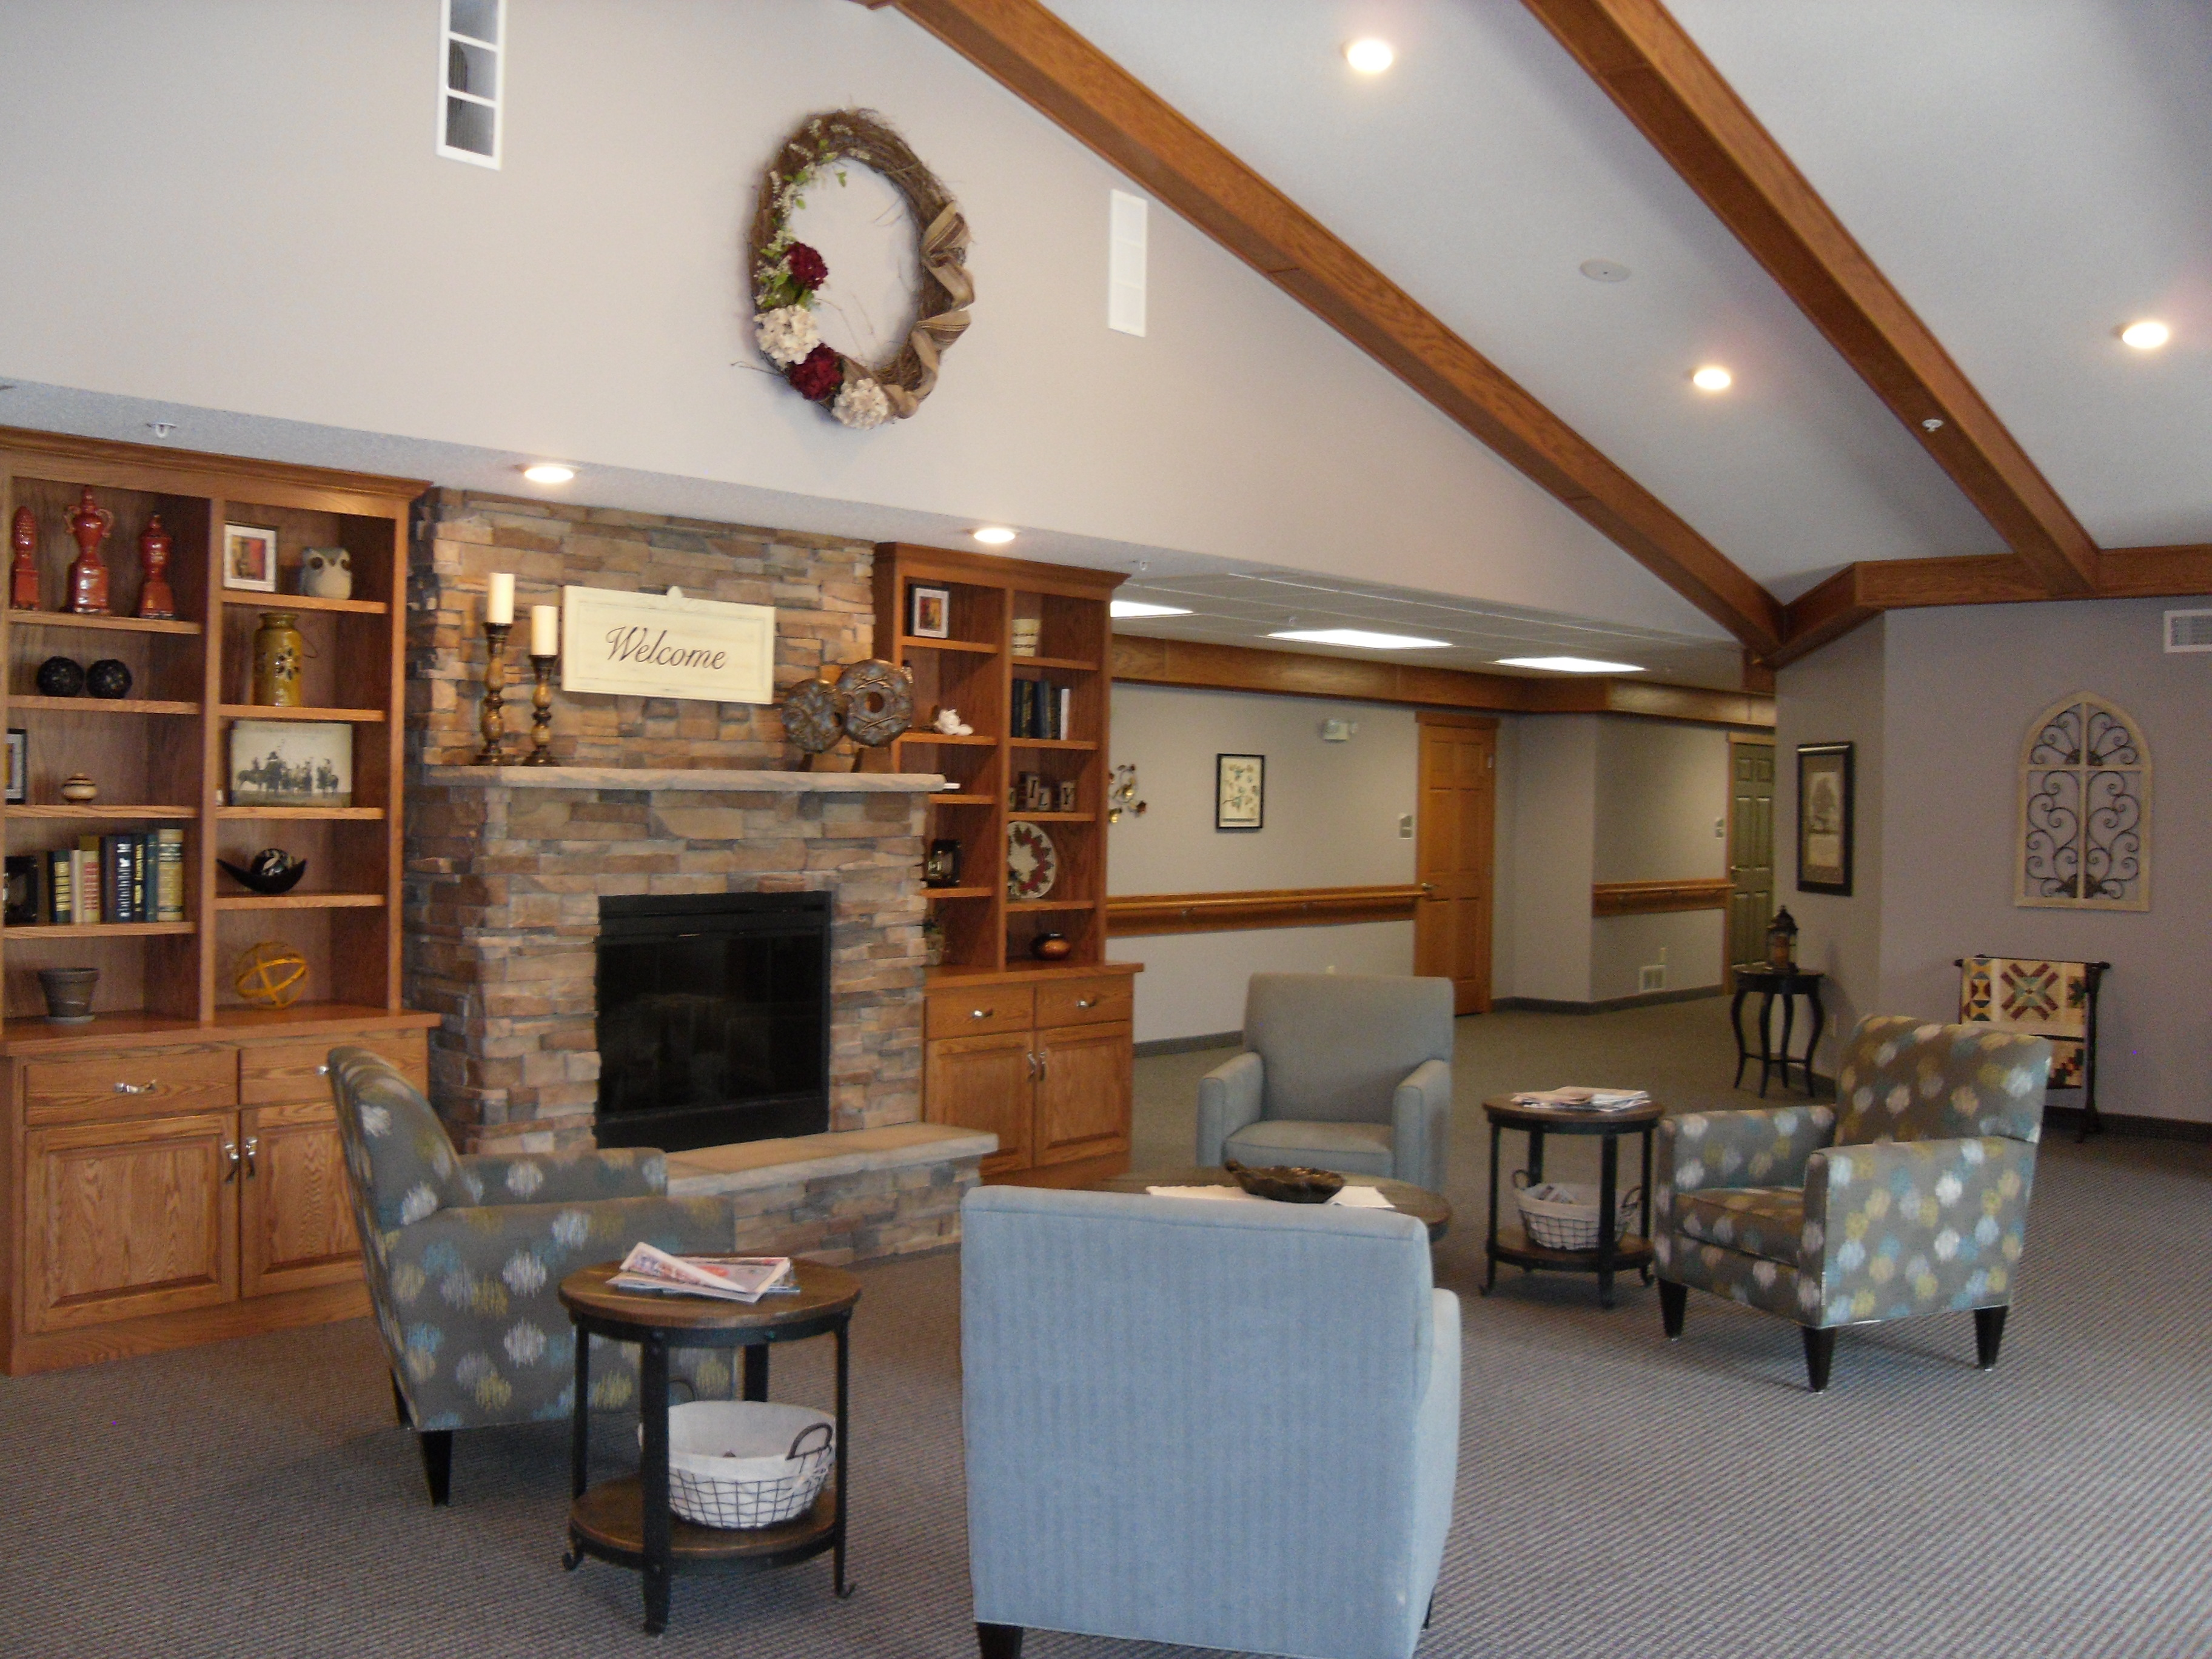 Home Front First Assisted Living, Montivideo MN